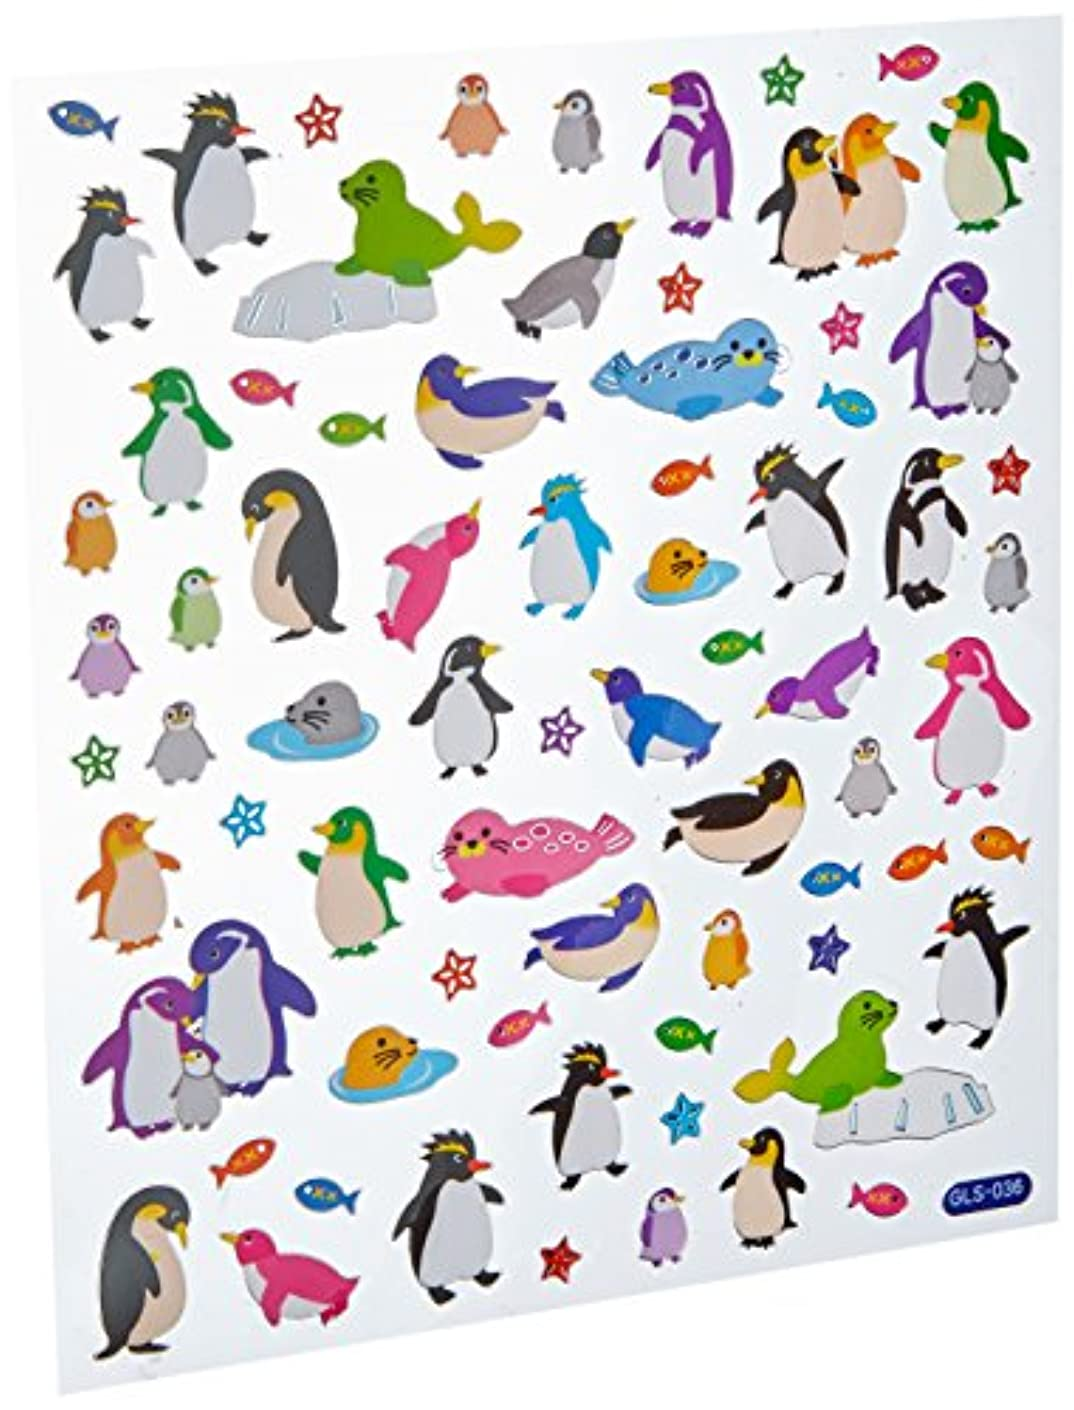 Tattoo King SK-4306 Multicolored Stickers-Penguins